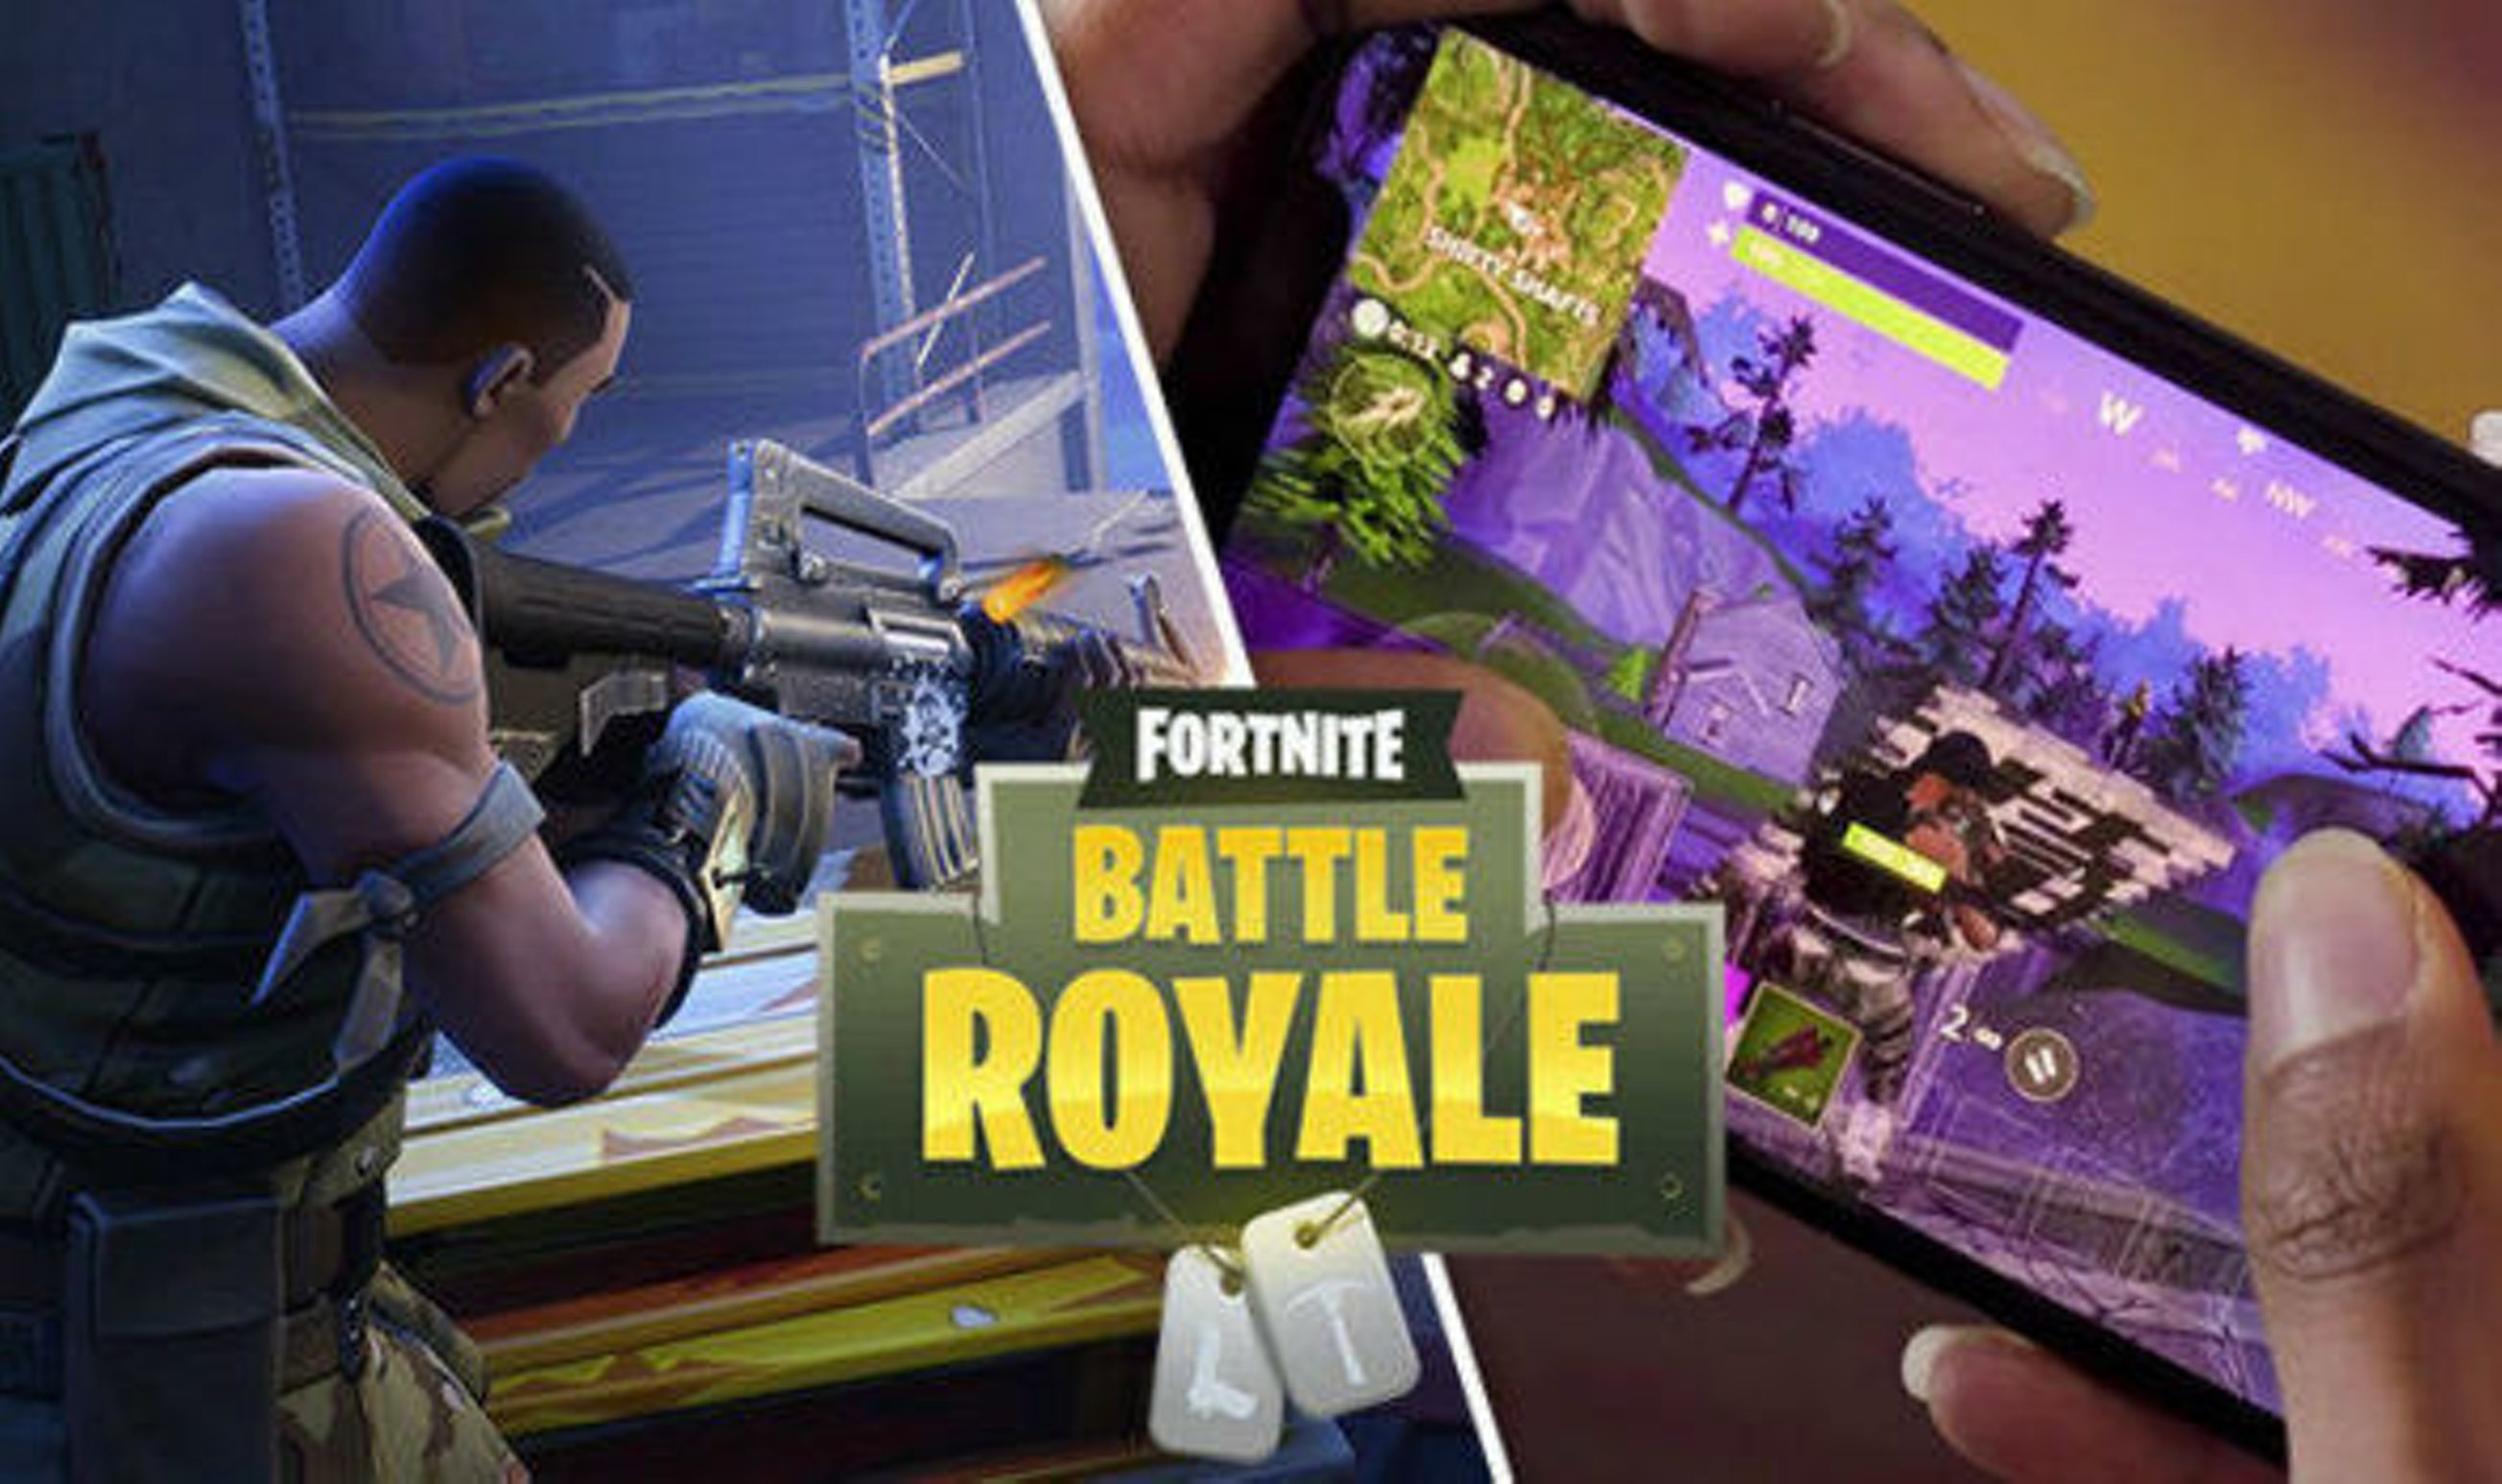 Compatible devices with Fortnite battle royale